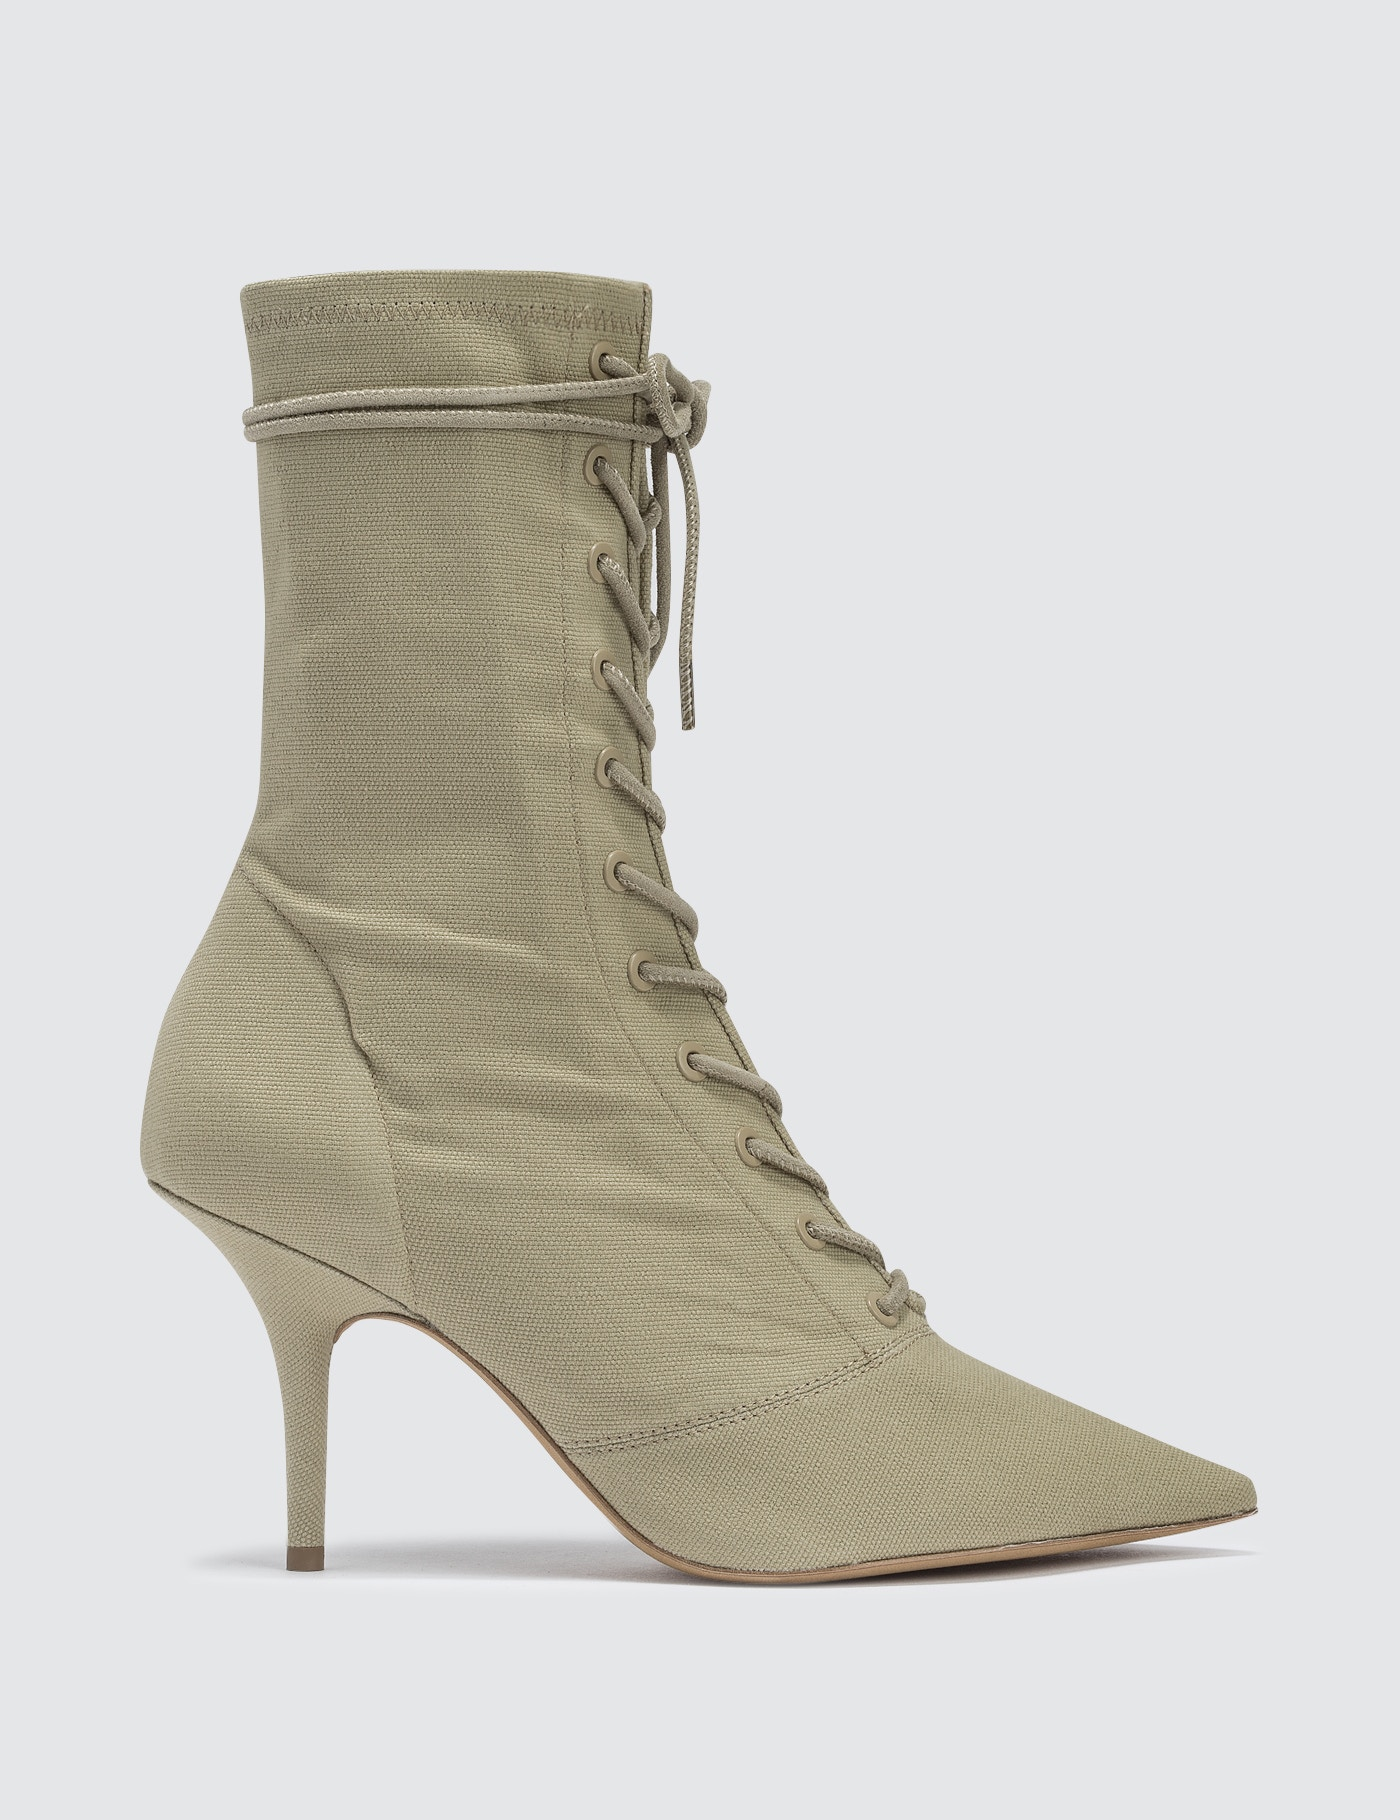 3eedaf06ebd05 ... Yeezy Season 6 Women s Lace Up Ankle Boot In Stretch Canvas 90mm ...